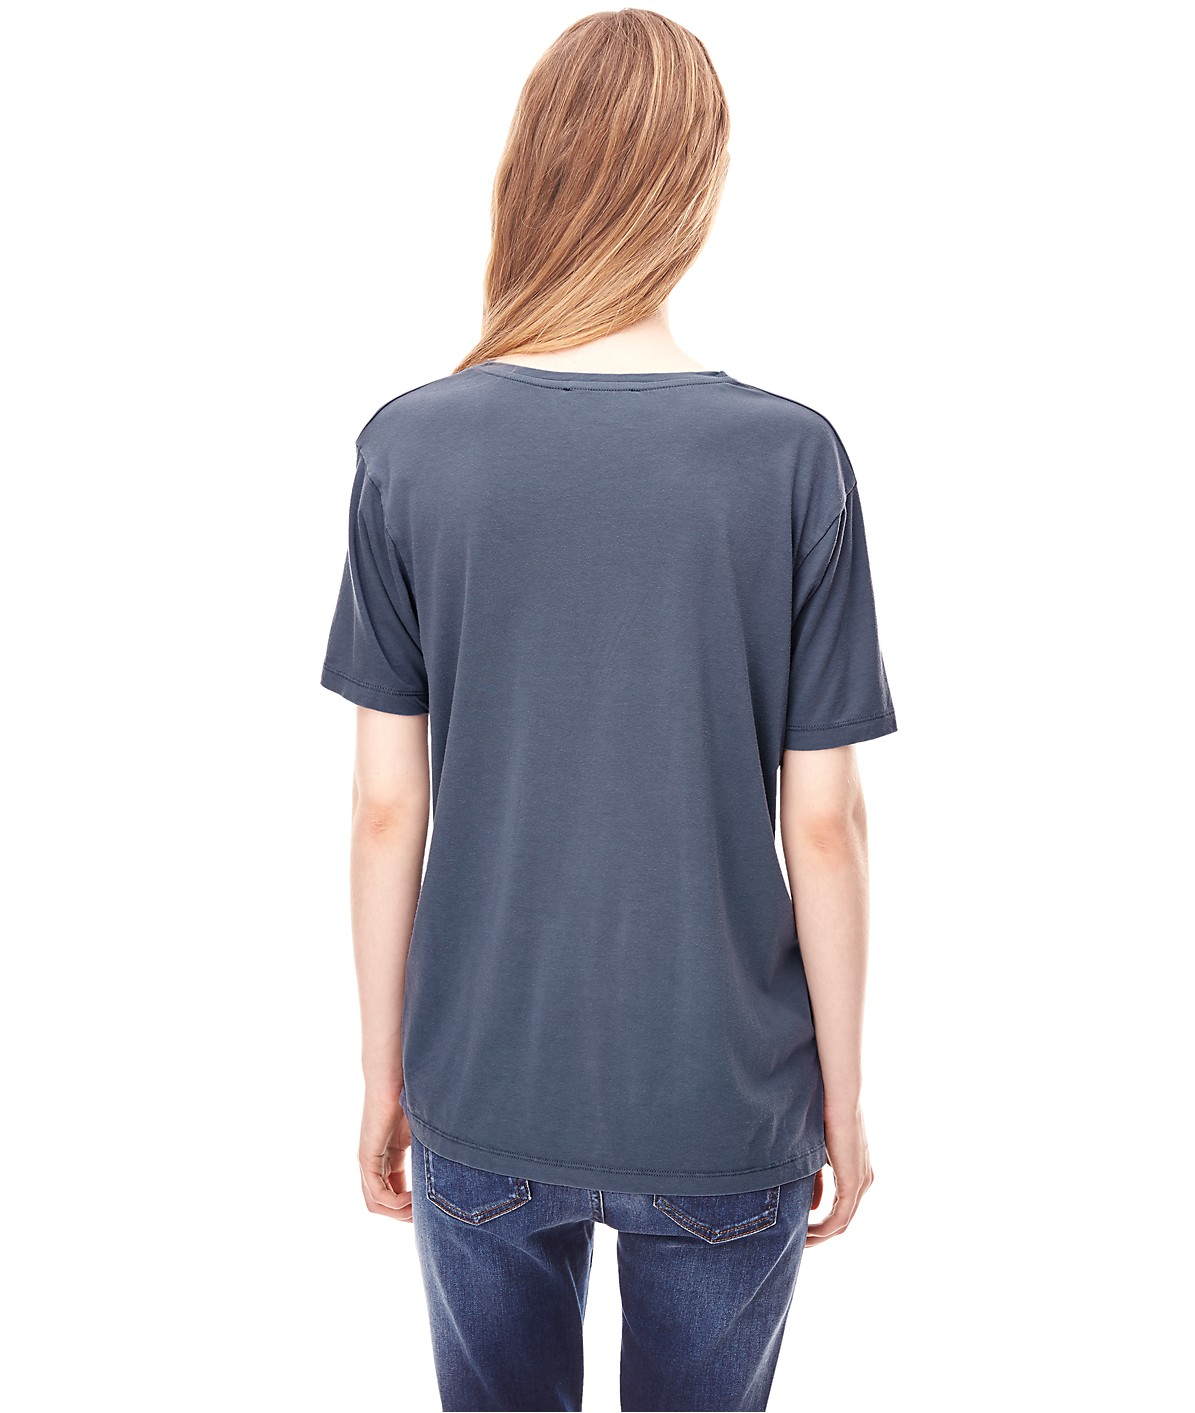 T-shirt H2161301 from liebeskind